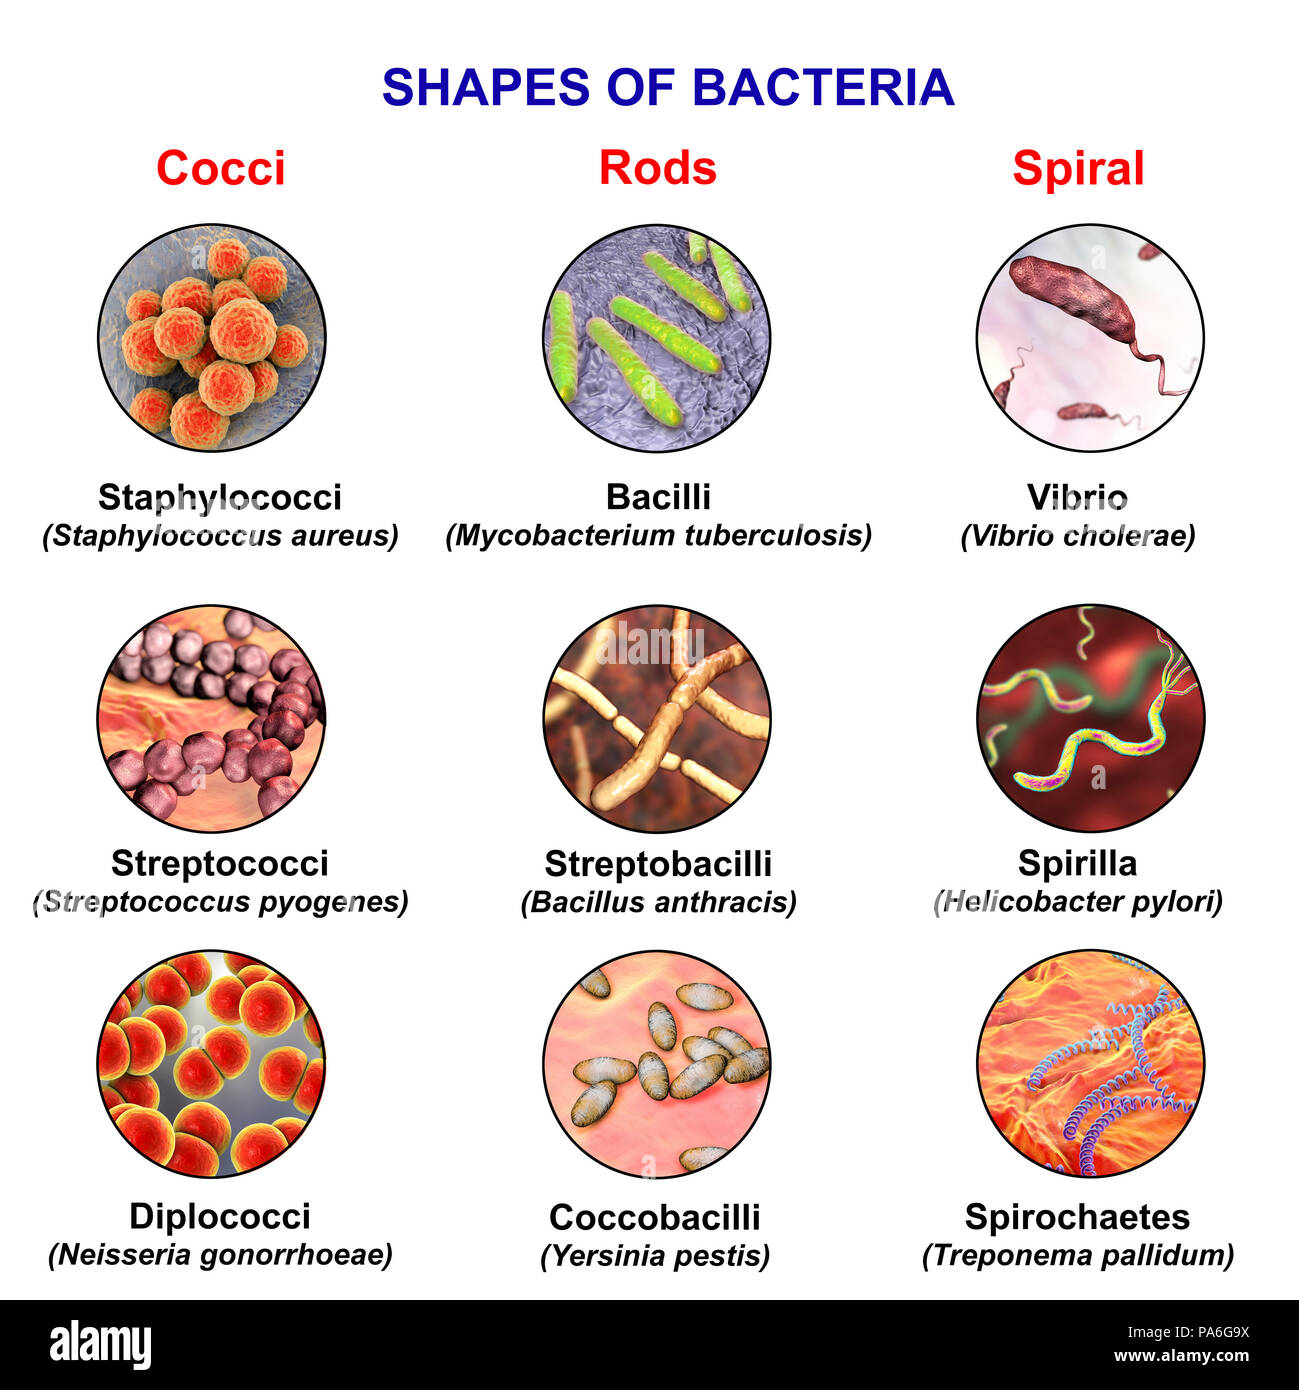 Bacteria of different shapes, computer illustration showing three main shapes of bacteria - spherical (cocci), for example, Staphylococcus aureus; rod-like, for example, Mycobacterium tuberculosis; and spiral, for example, Campylobacter jejuni. Stock Photo